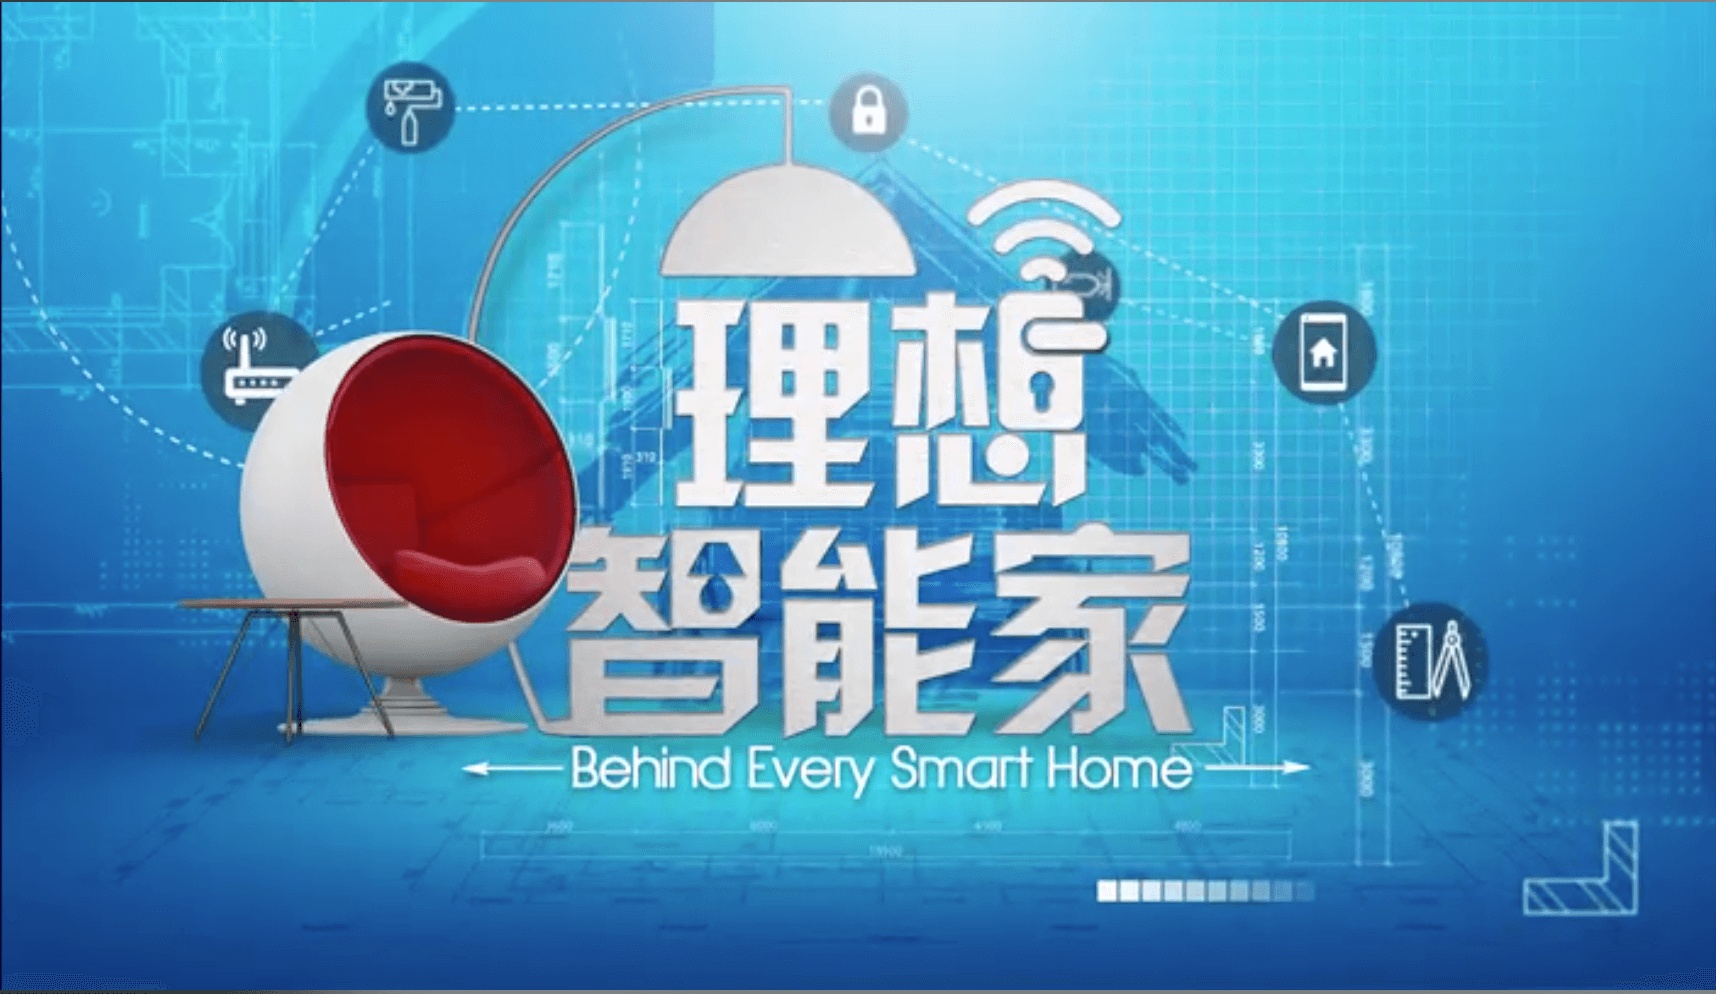 Behind Every Smart Home